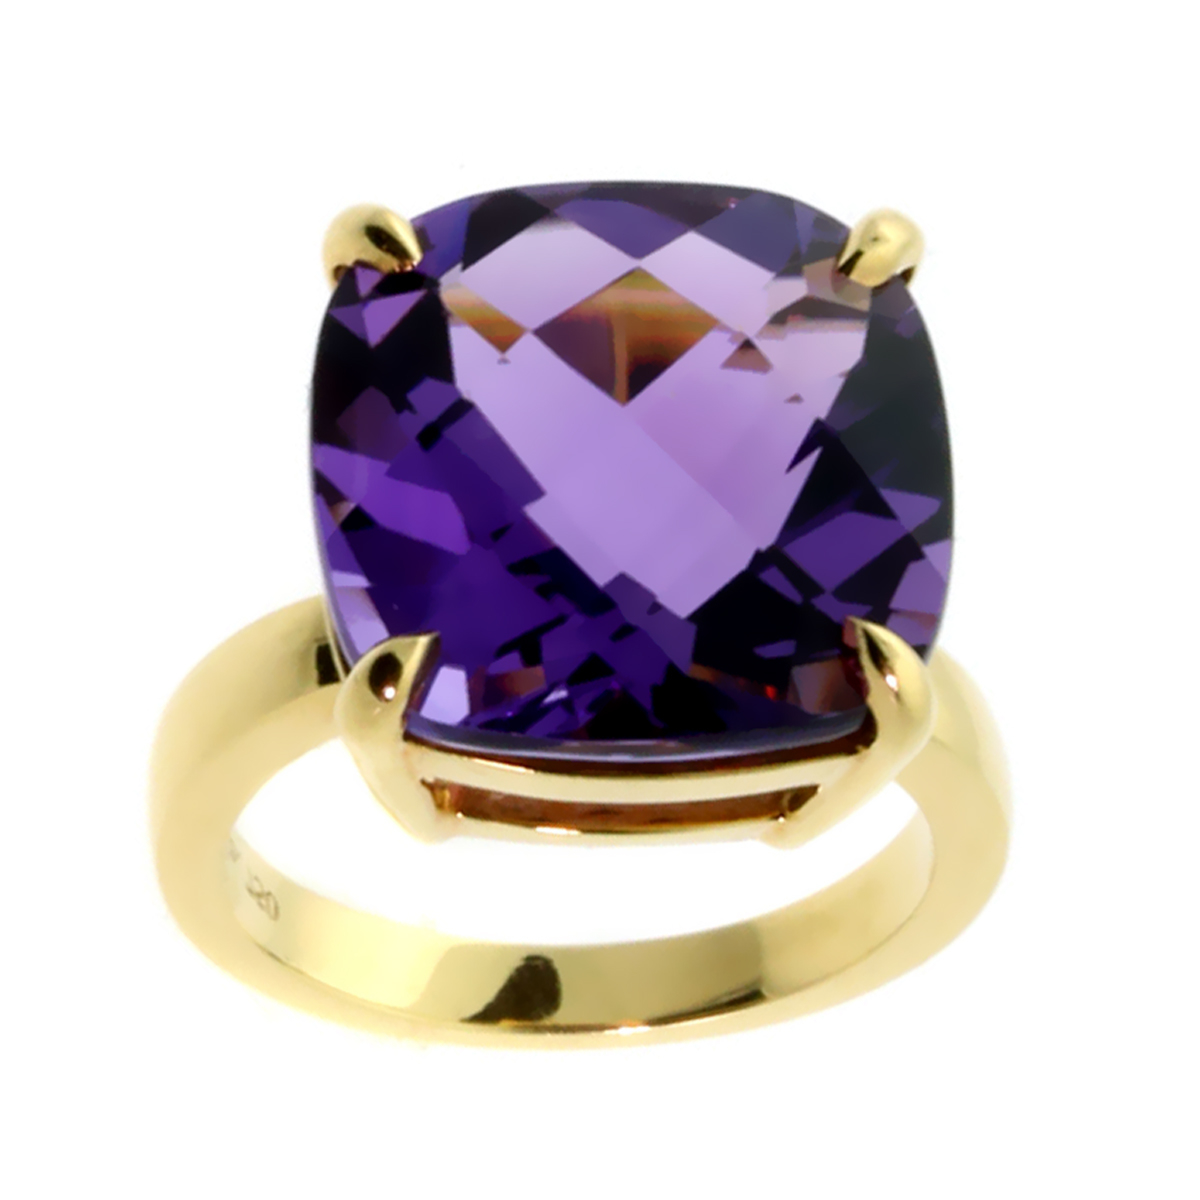 Tiffany & Co Amethyst Gold Ring - Tiffany and Co Jewelry